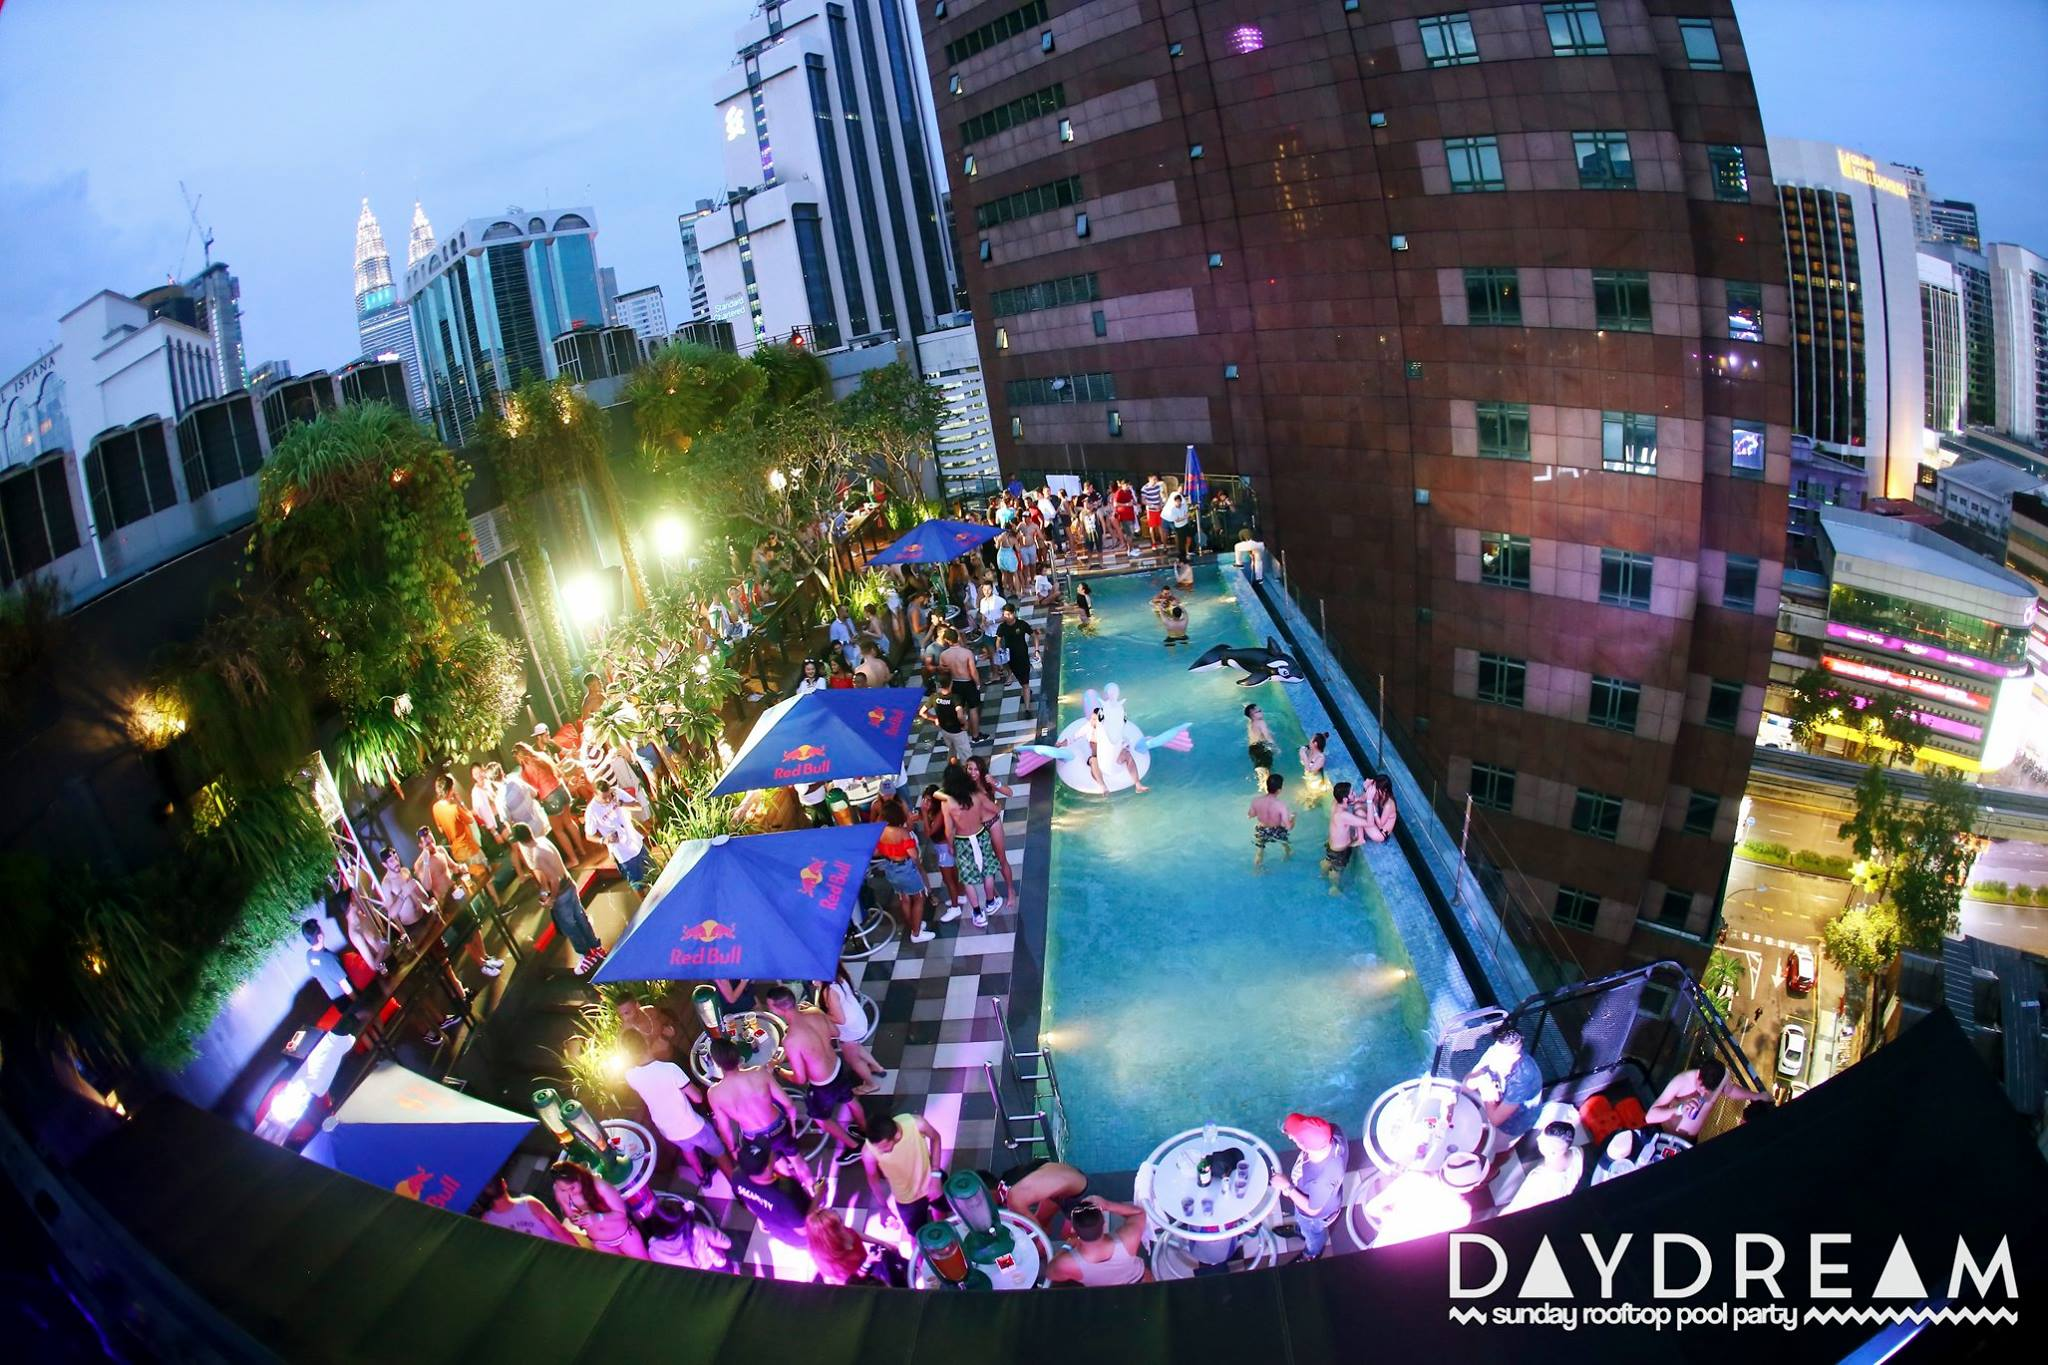 Day Dream Pool Party at The KL Journal